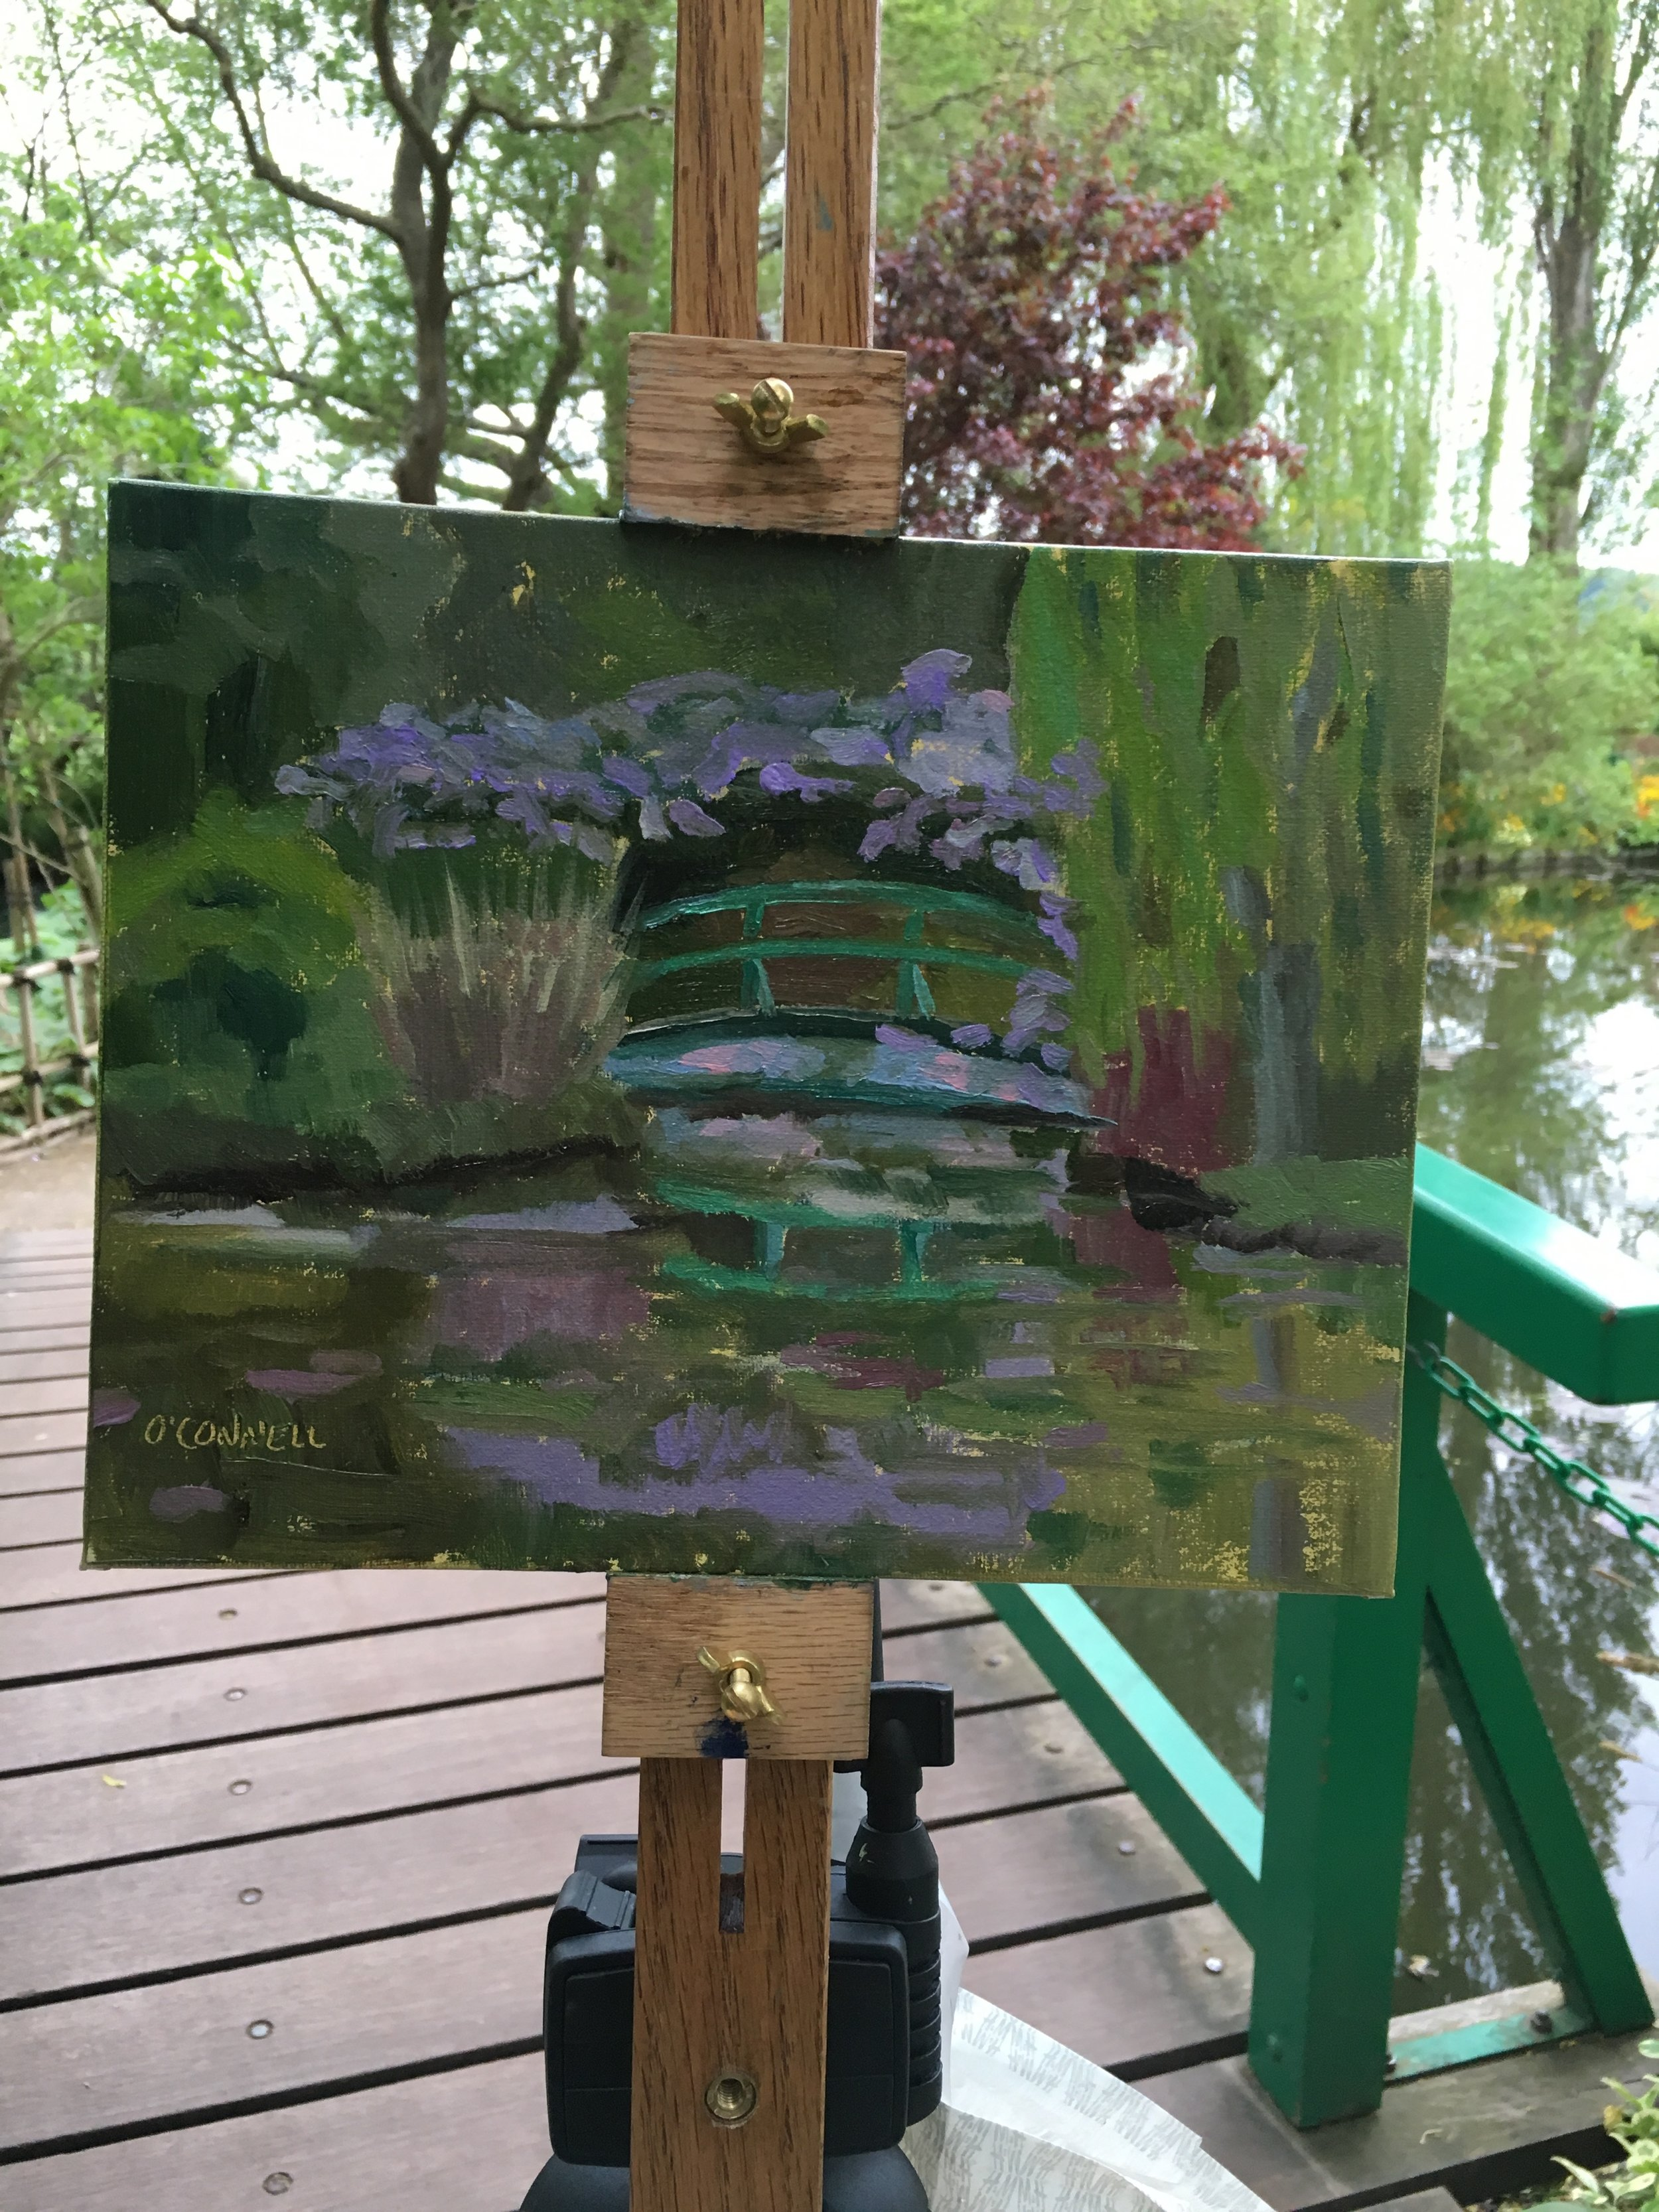 Painting in progress of wisteria in bloom on the bridge